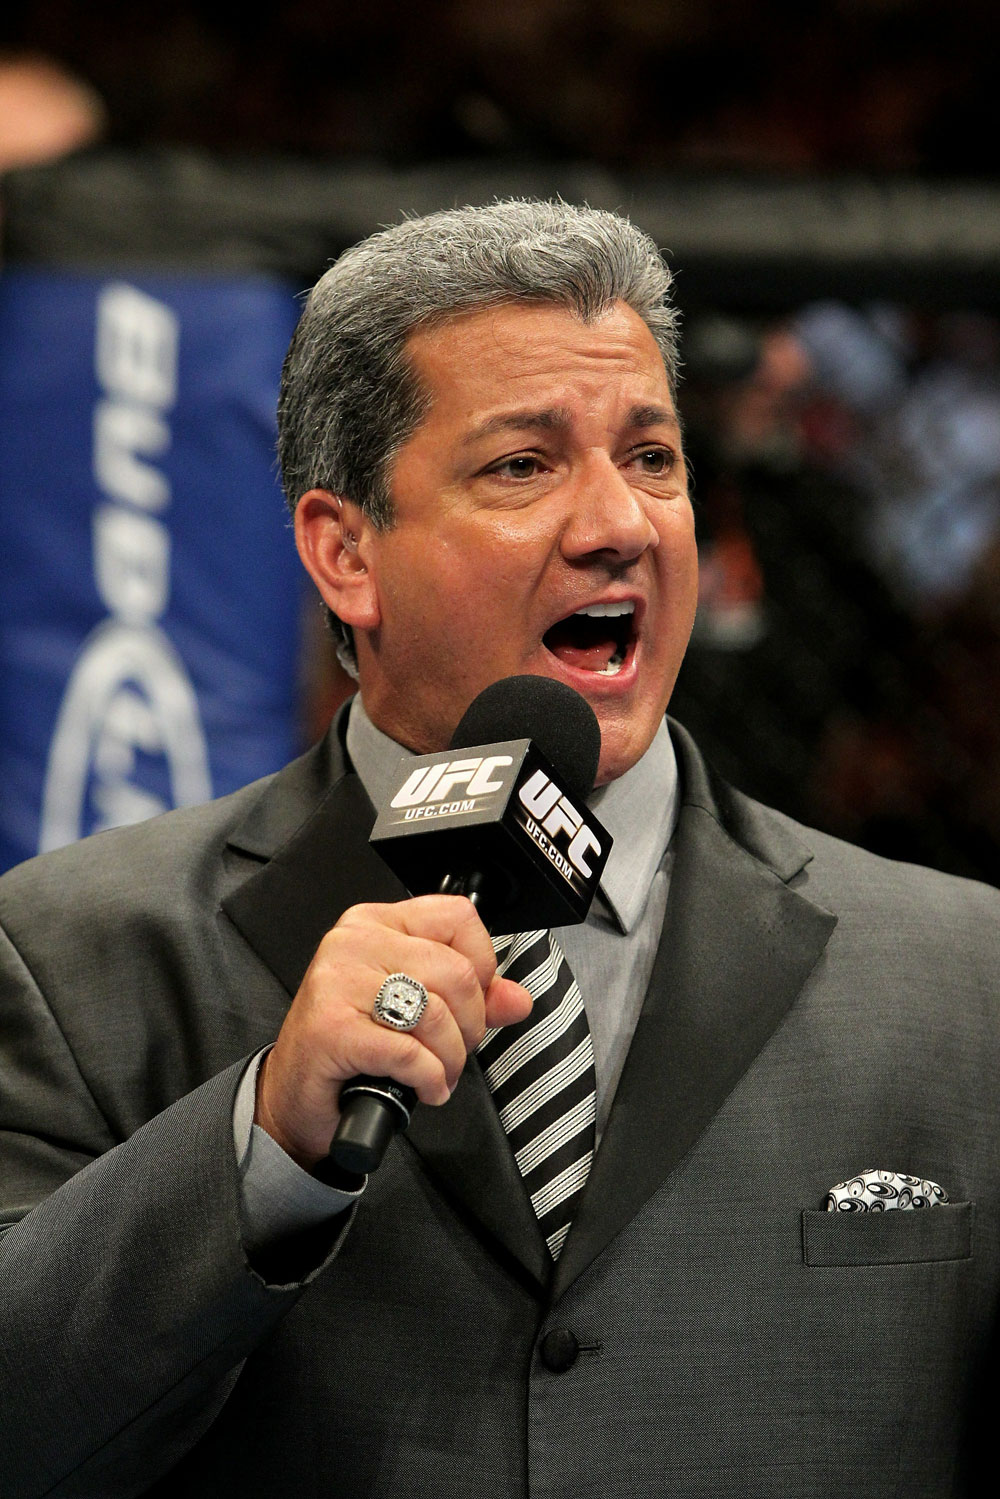 UFC 120: Bruce Buffer announces the main event fight.